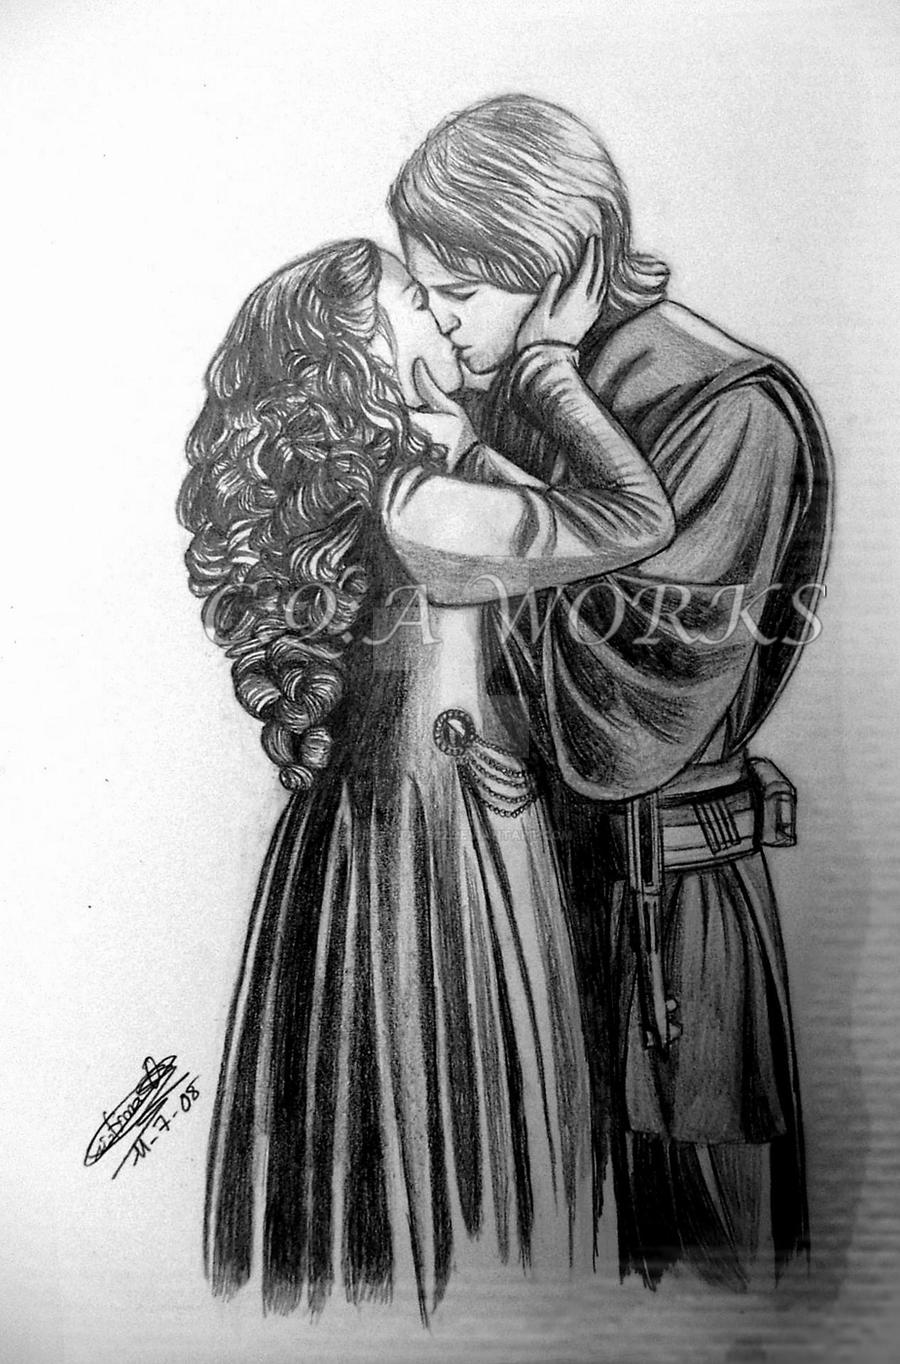 anakin and padme kissing by acrosstars22